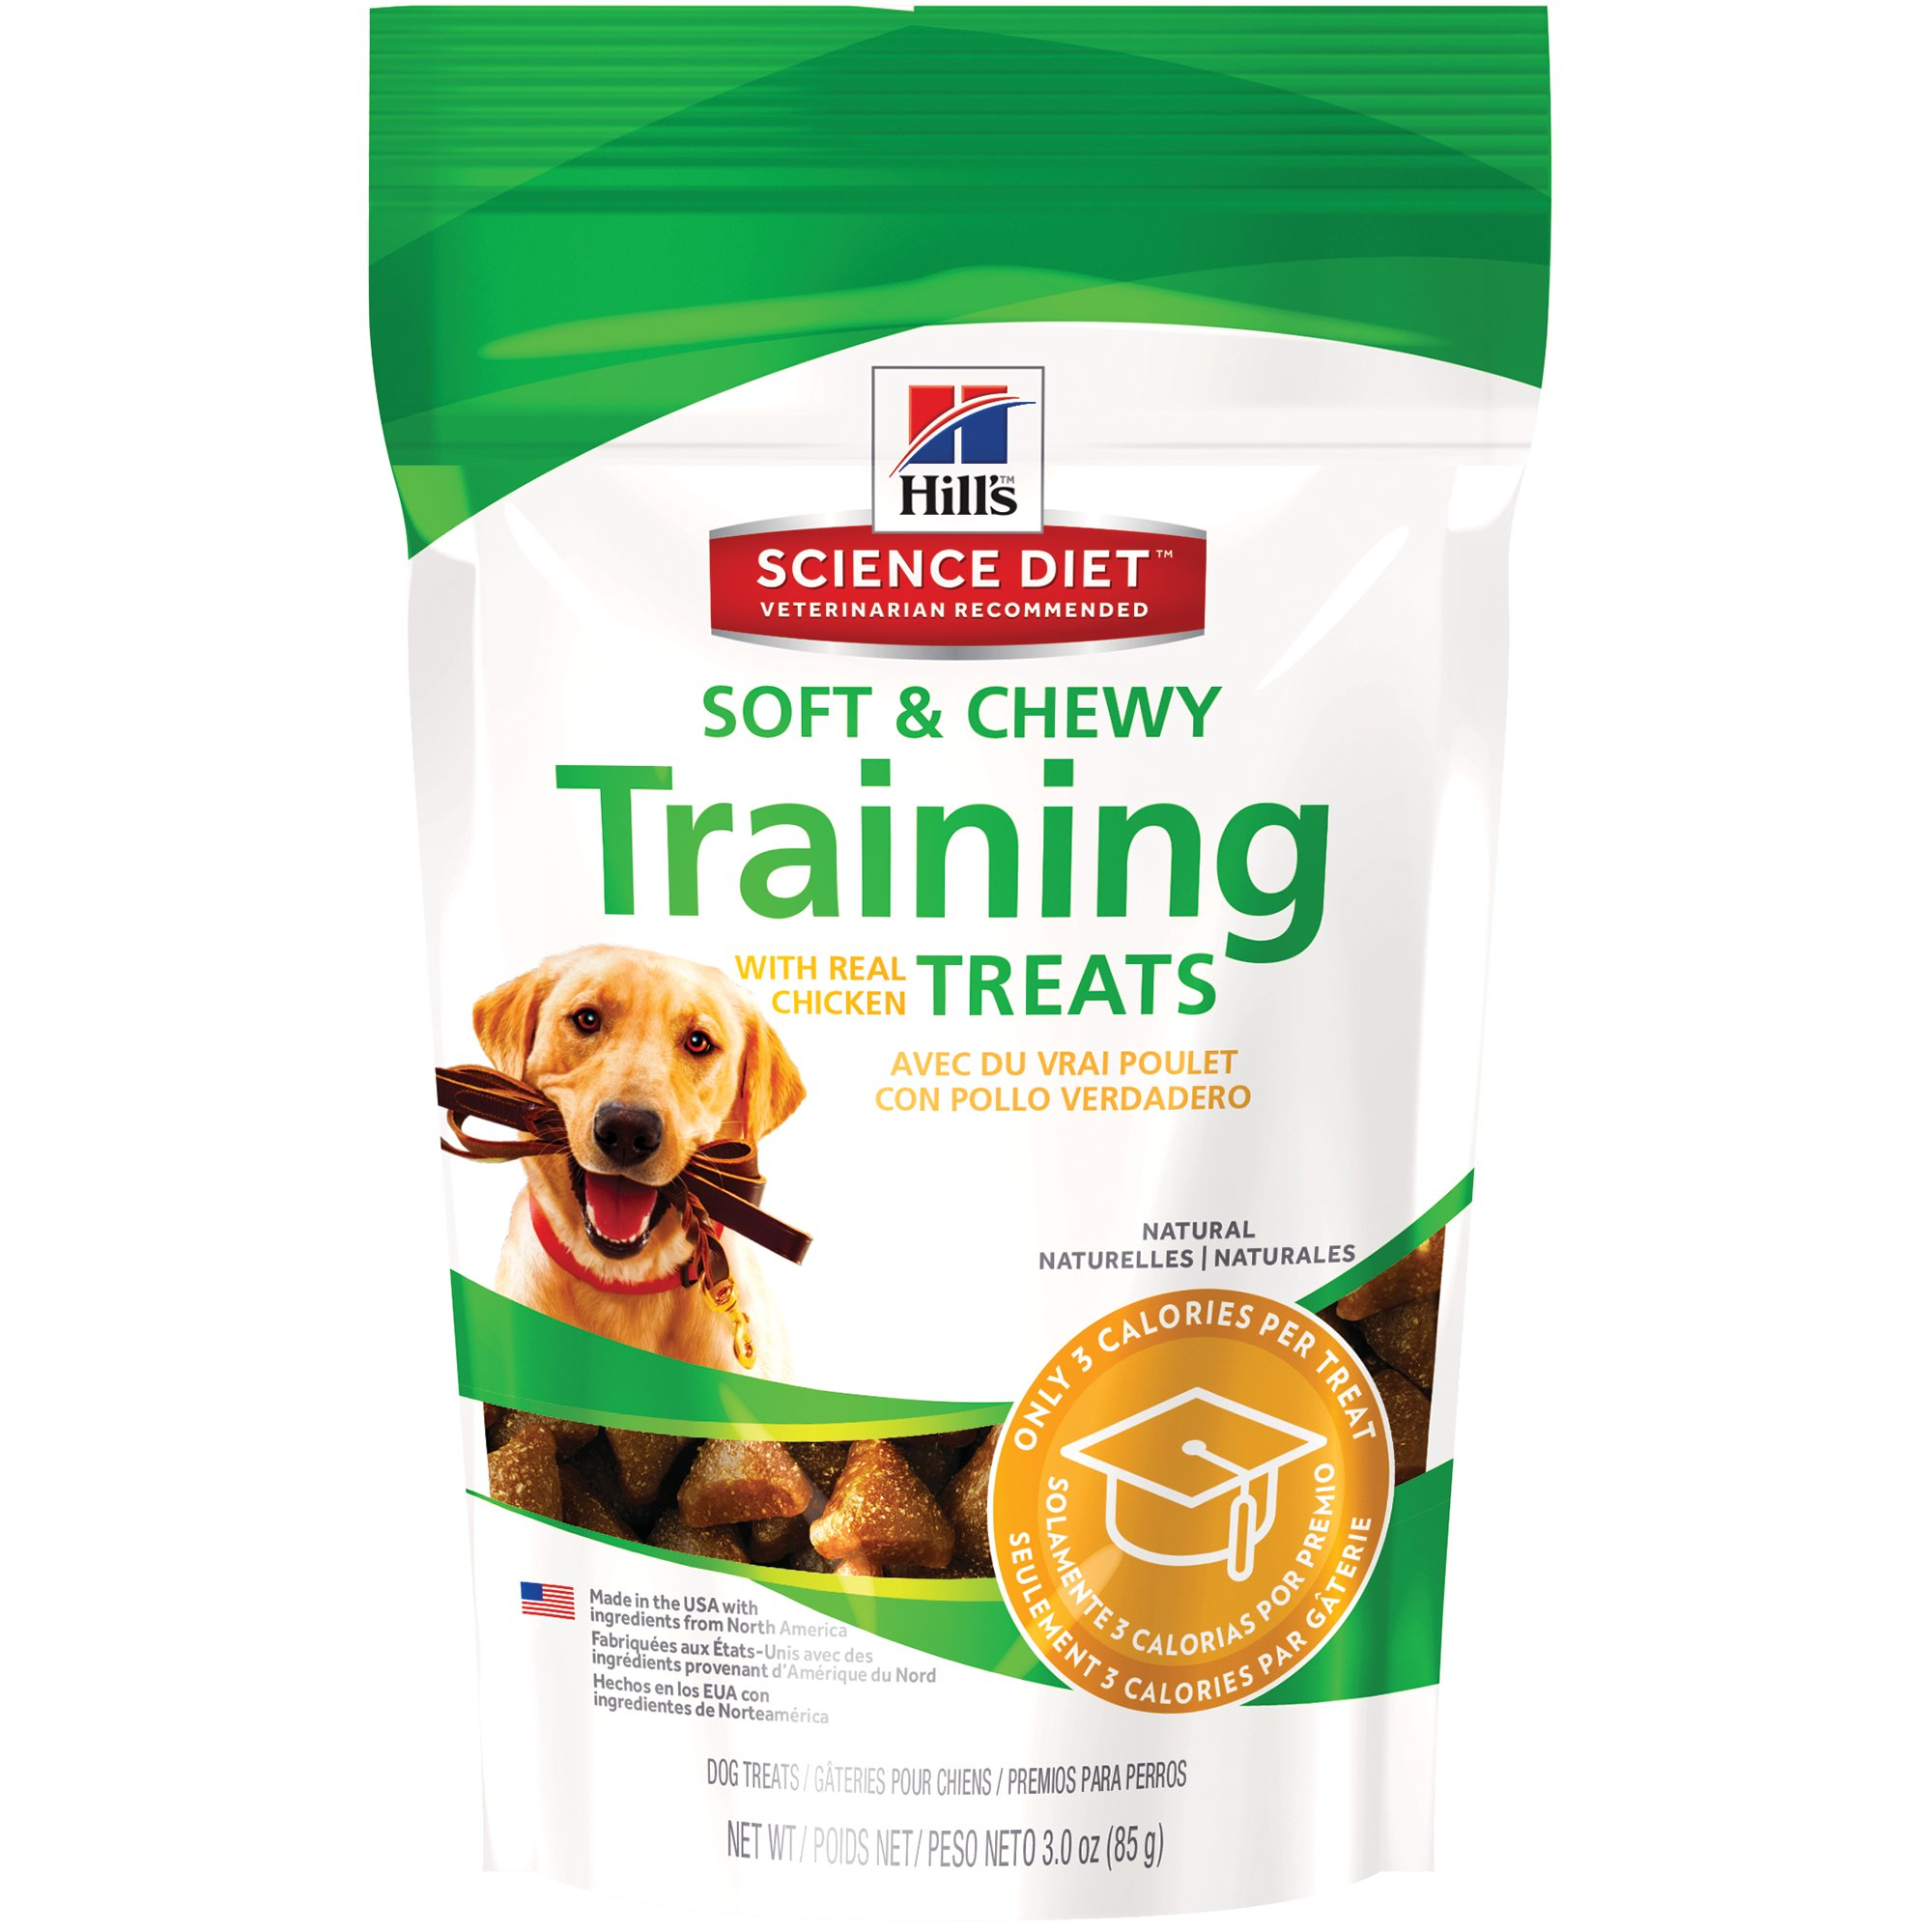 Hill's Science Diet Chicken Training Treats for Dogs | Petco